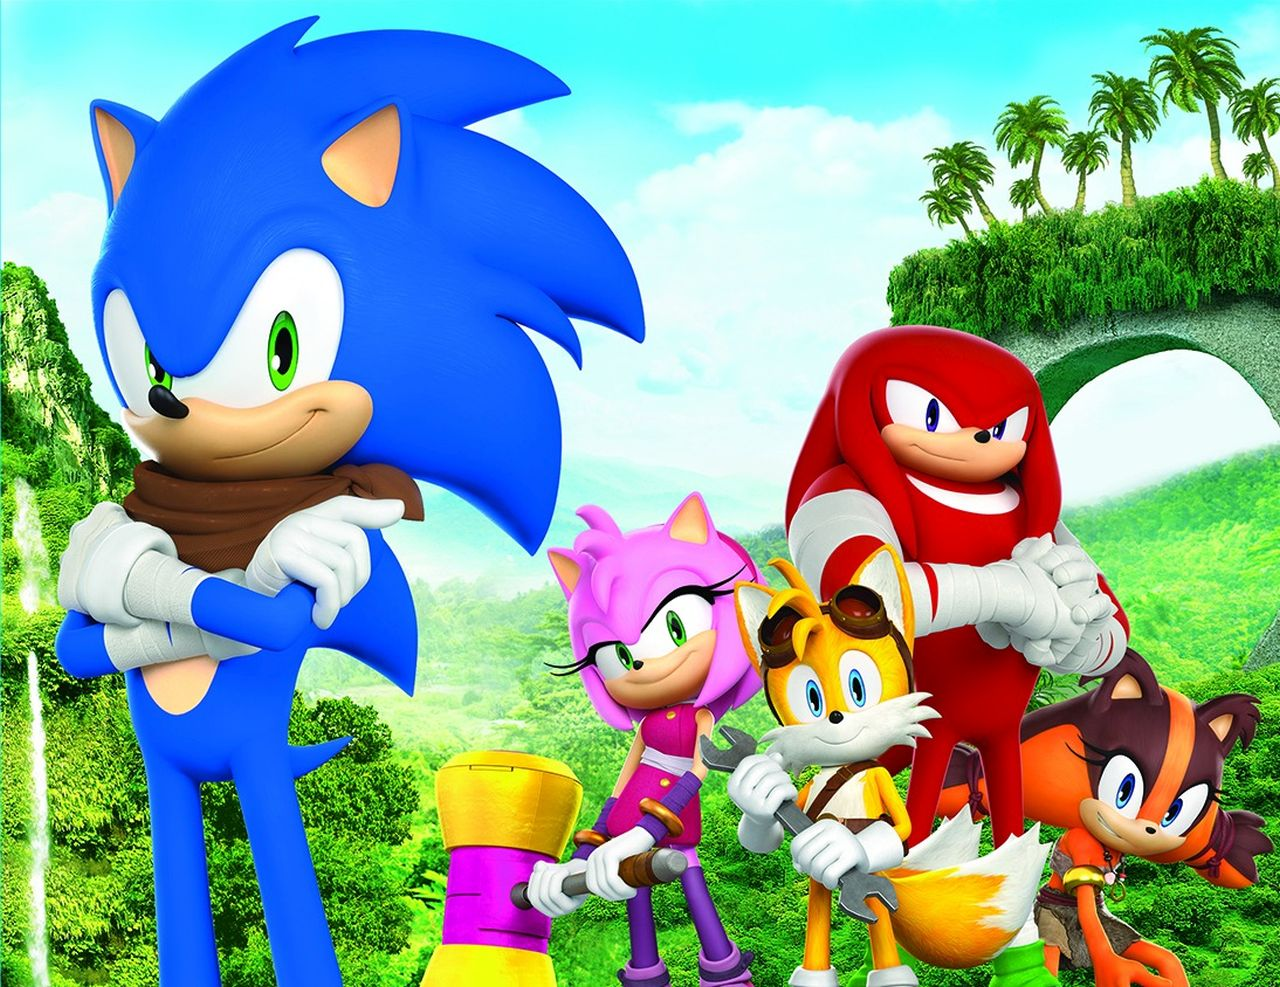 Sonic Boom Sticks with friends